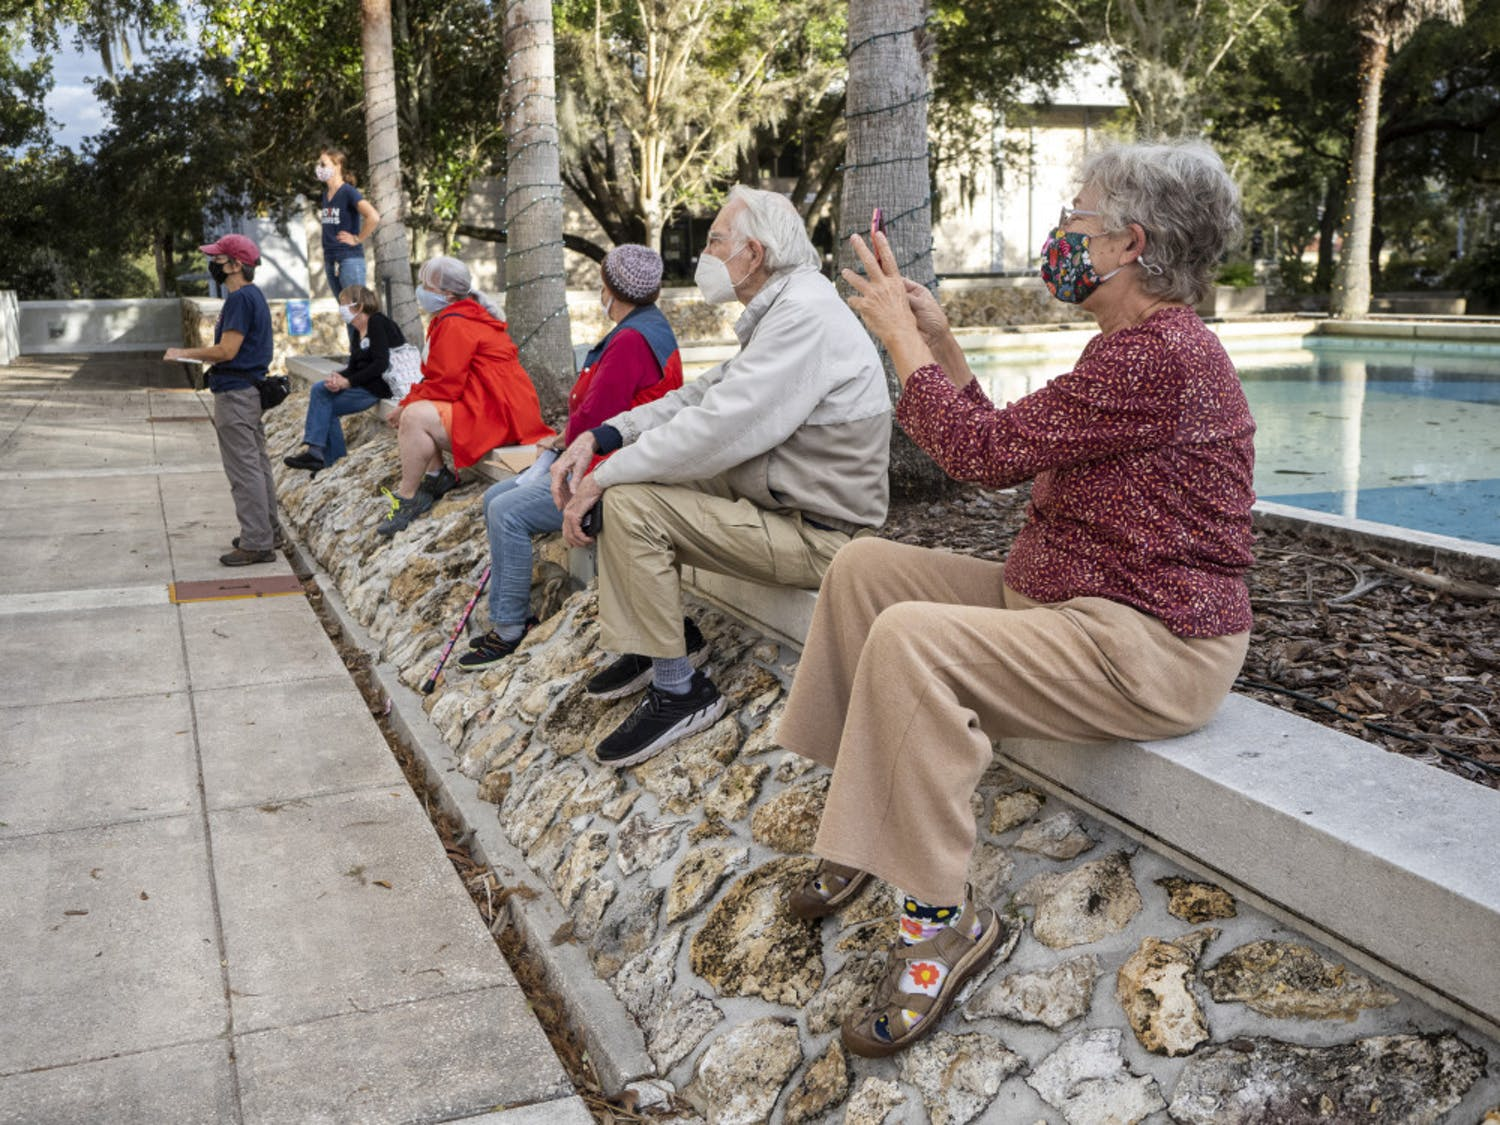 A group of people are seen listening to speakers from the Blue Wave Coalition in Alachua County, who organized a Protect the Results rally held at the Alachua City Hall on Wednesday, Nov. 4, 2020. (Emily Felts/Alligator Staff)